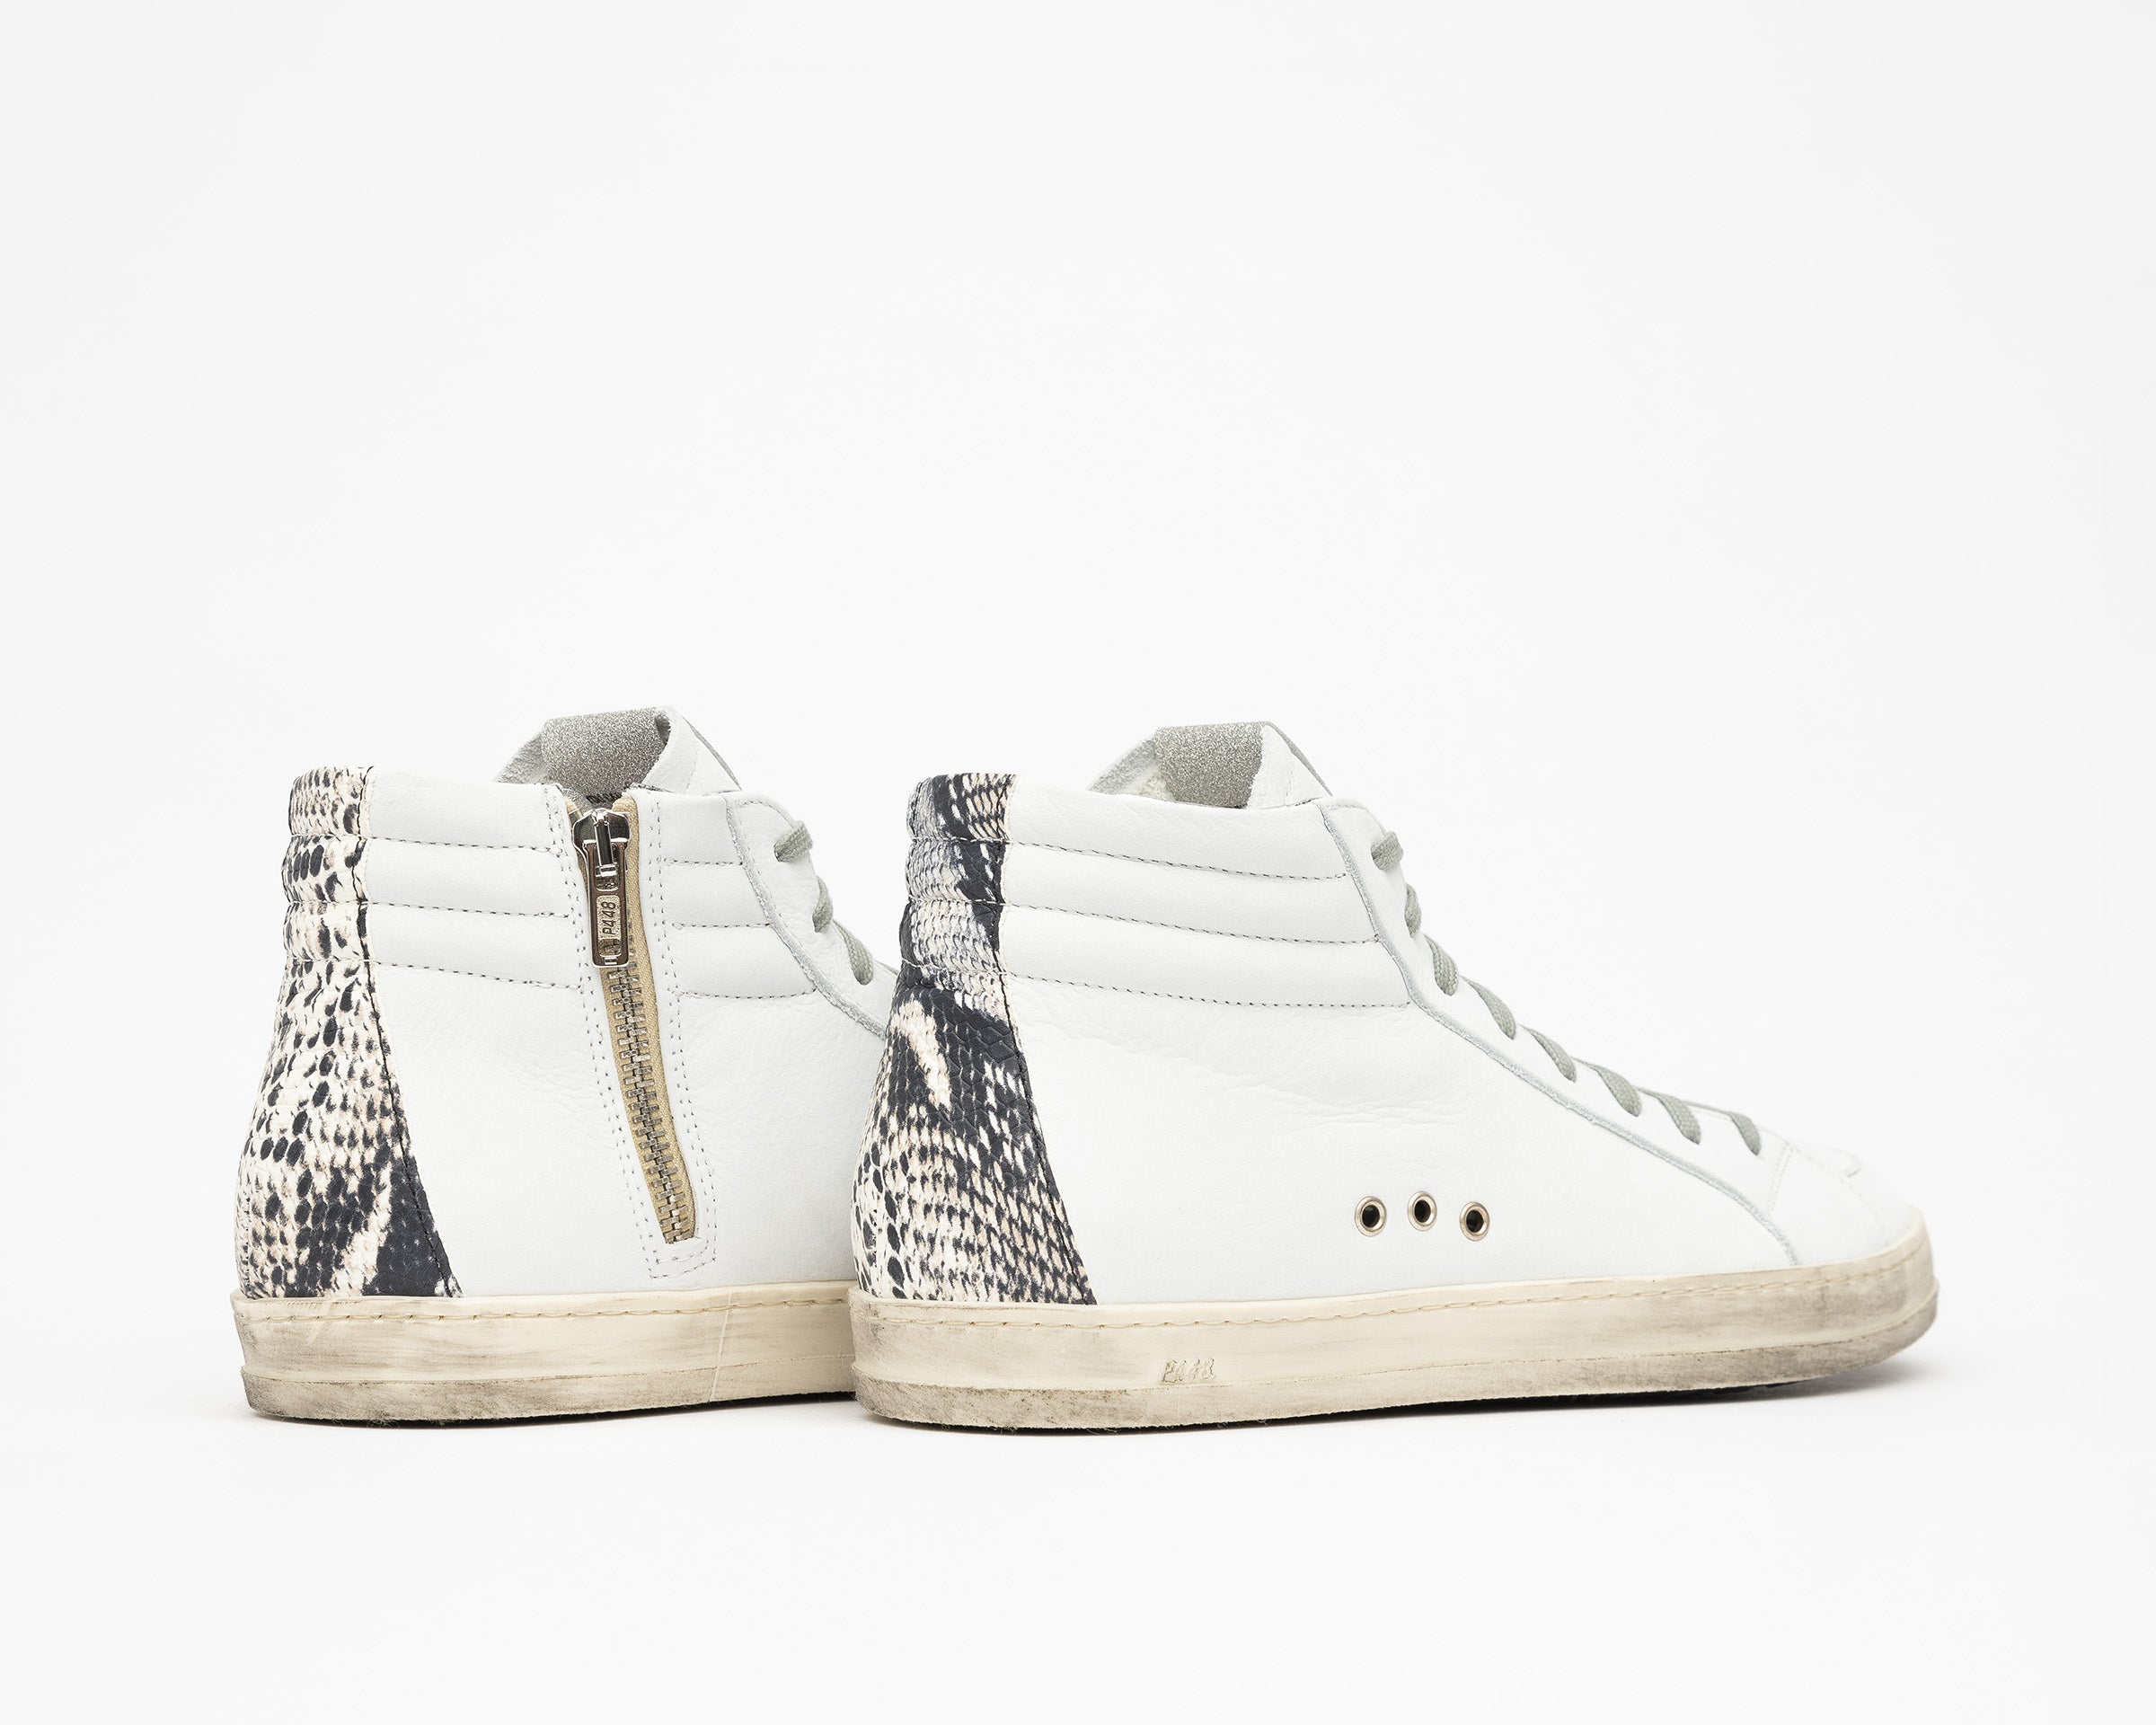 Skate High-Top Sneaker in White/Twister Python - Detail 1